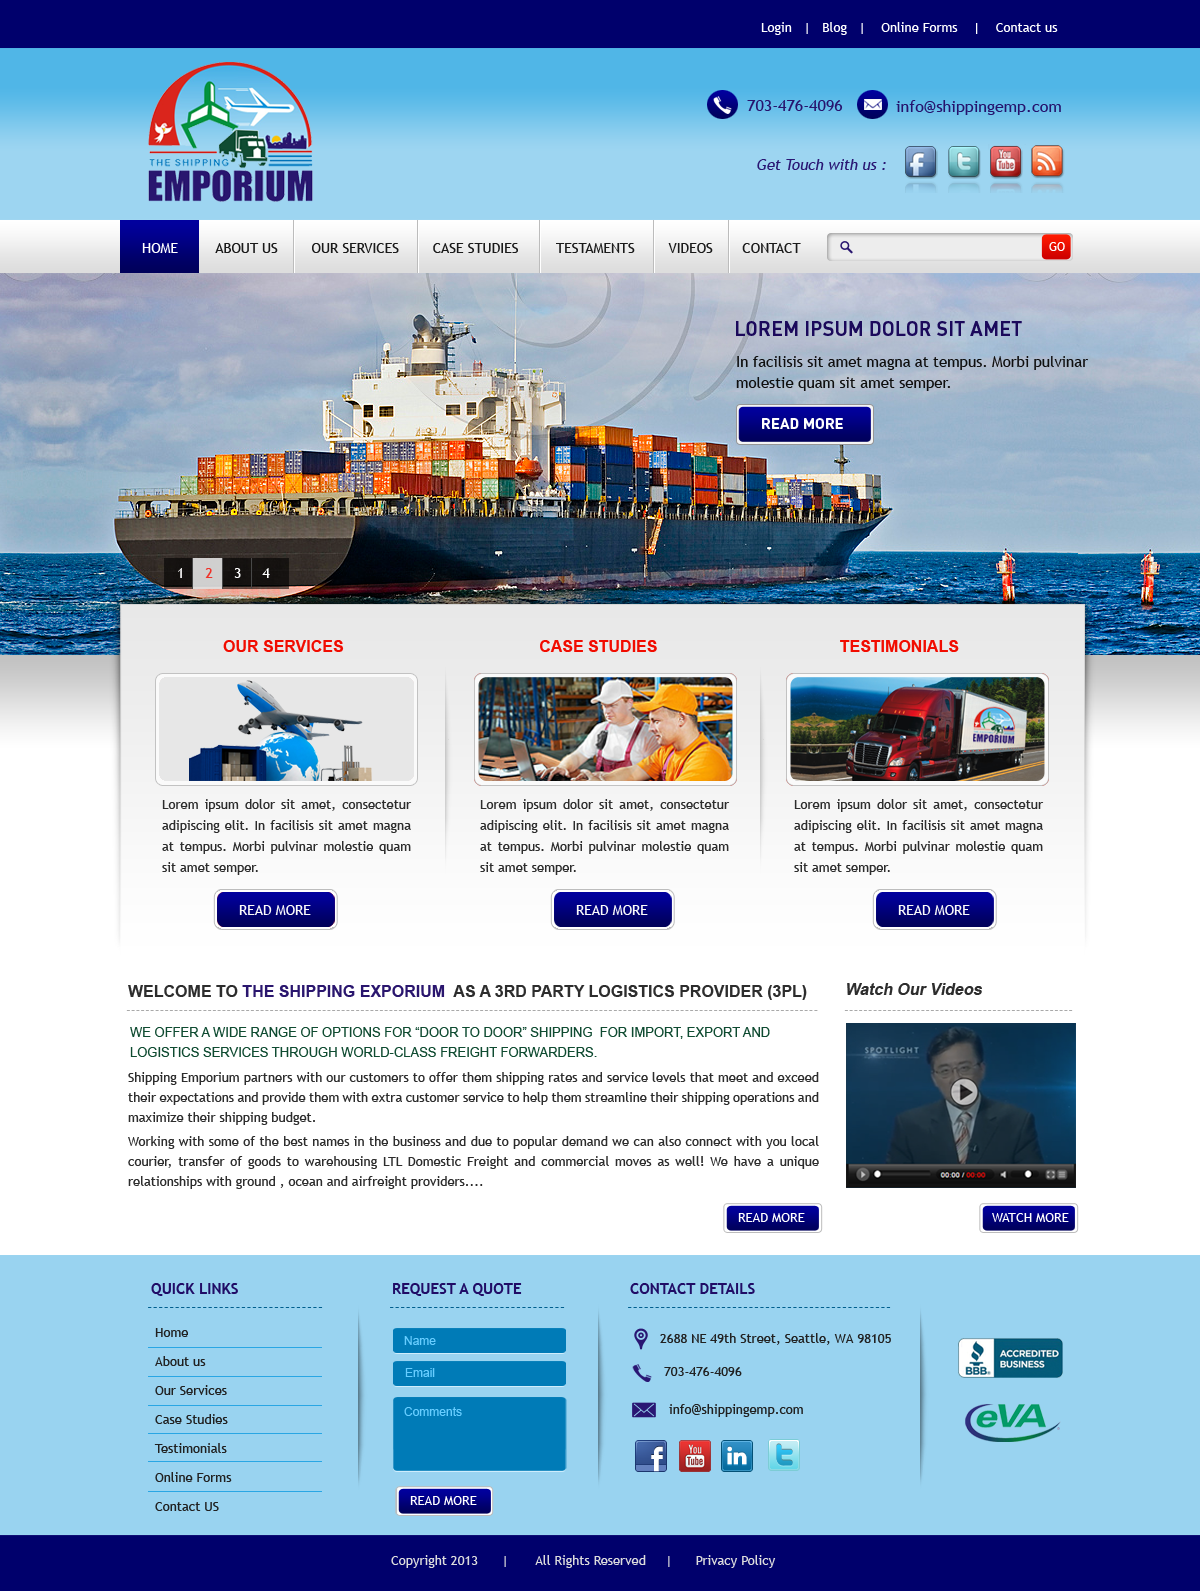 Web Page Design by Vishwa Km - Entry No. 30 in the Web Page Design Contest Artistic Web Page Design for The Shipping Emporium Website.